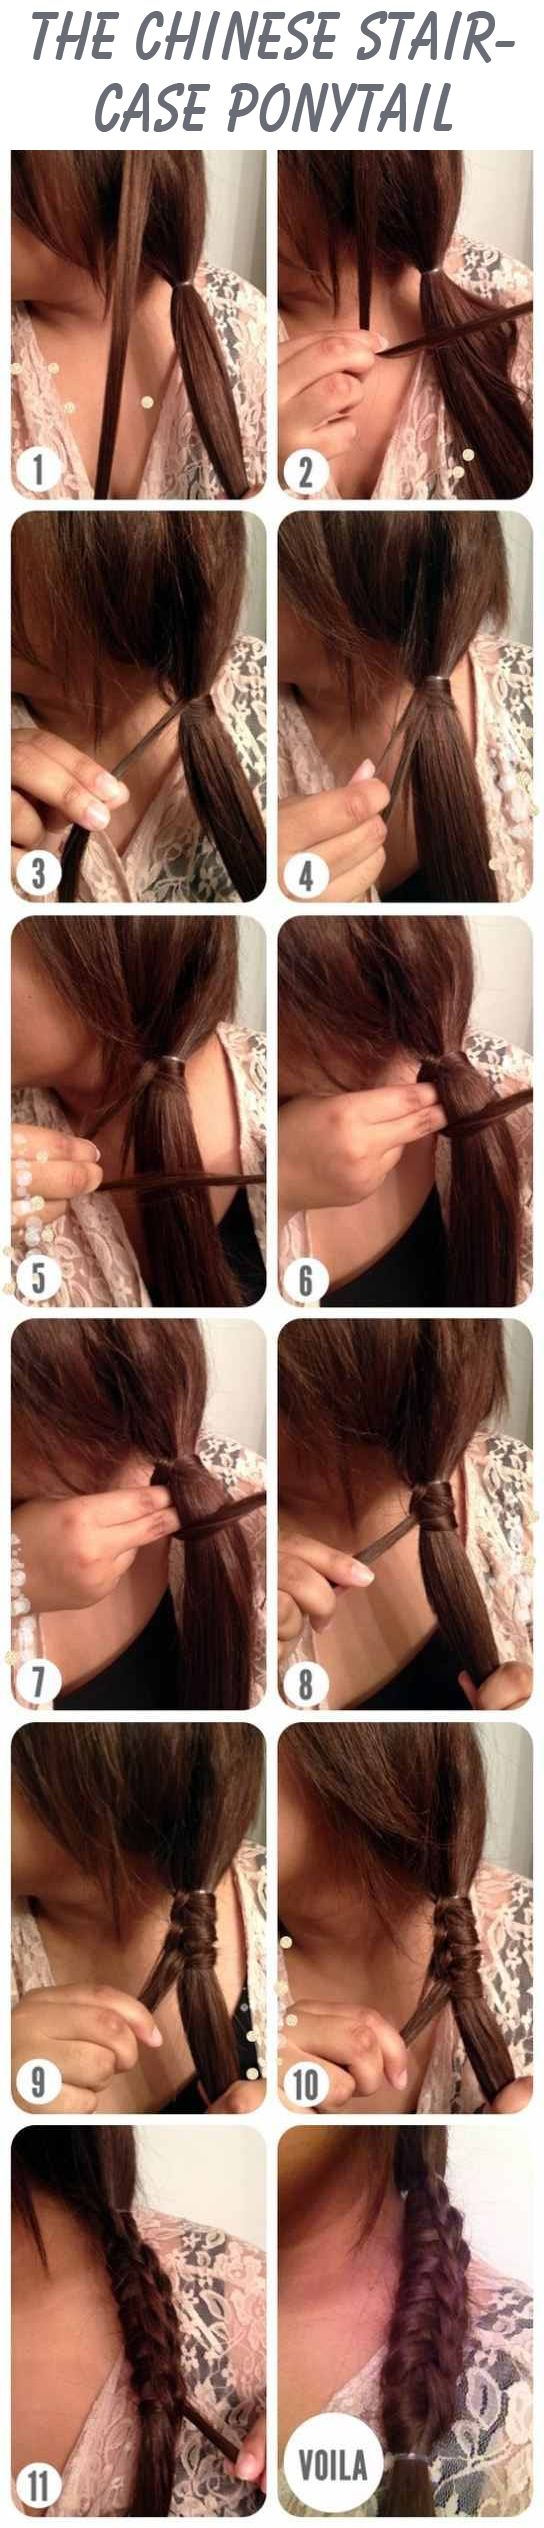 Chinese  Staircase  Ponytail  Hairstyle